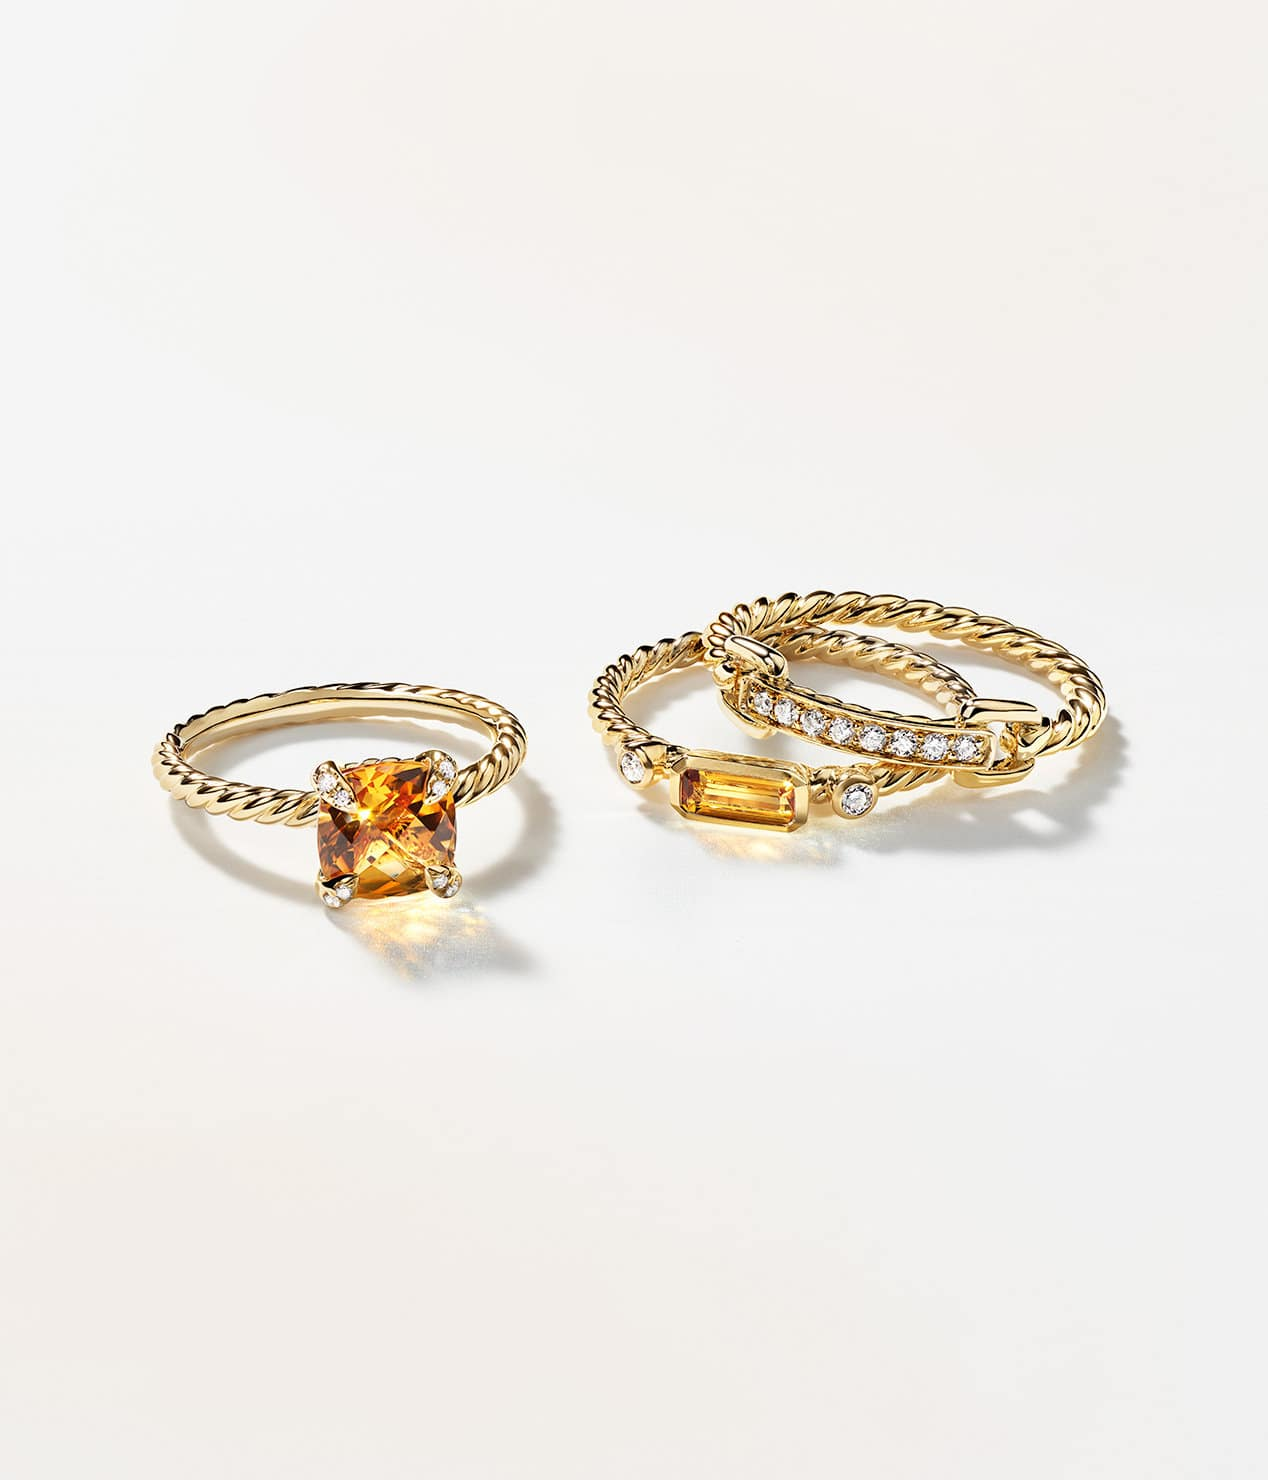 A color photograph shows three David Yurman rings scattered in two stacks on a white background with soft shadows. The women's jewelry is crafted from 18K yellow gold with pavé diamonds. Two rings feature cushion- or emerald-cut citrine center stones.